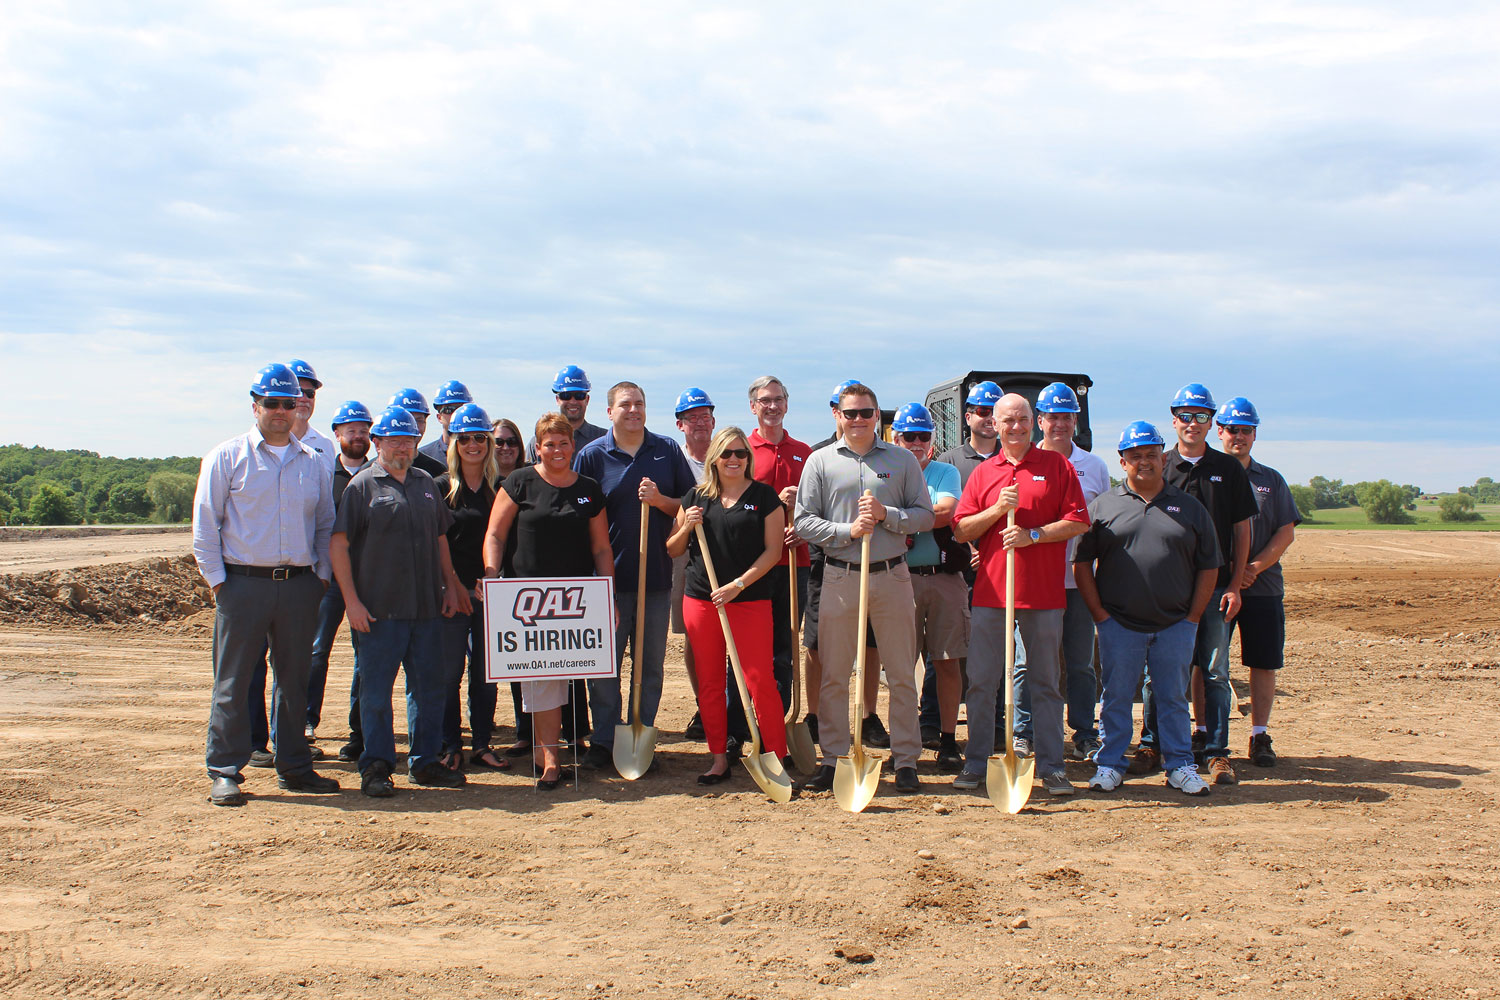 A group of QA1 employees gathers to break ground on the new modern facility